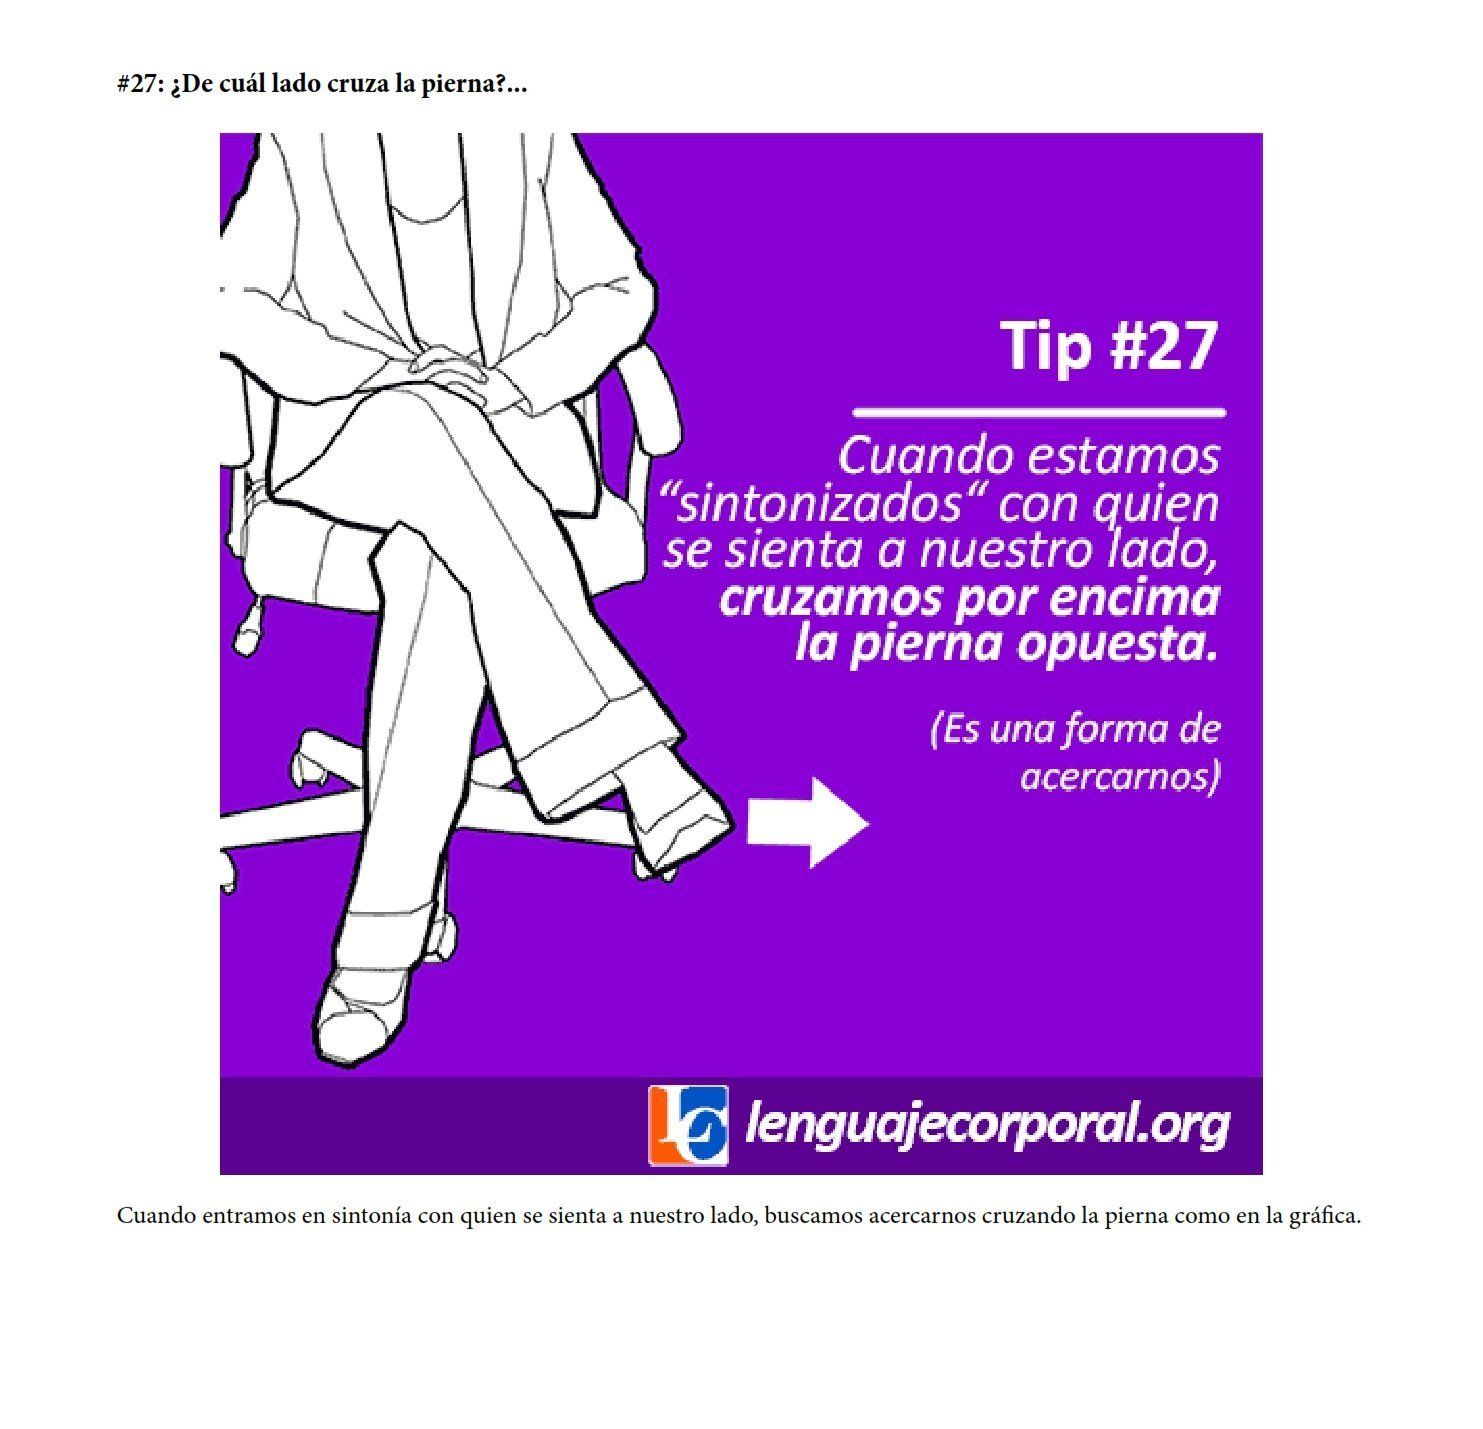 Megapost 50 Tips Del Lenguaje Corporal Imagenes En Taringa Work Quotes Body Language Psychology Facts